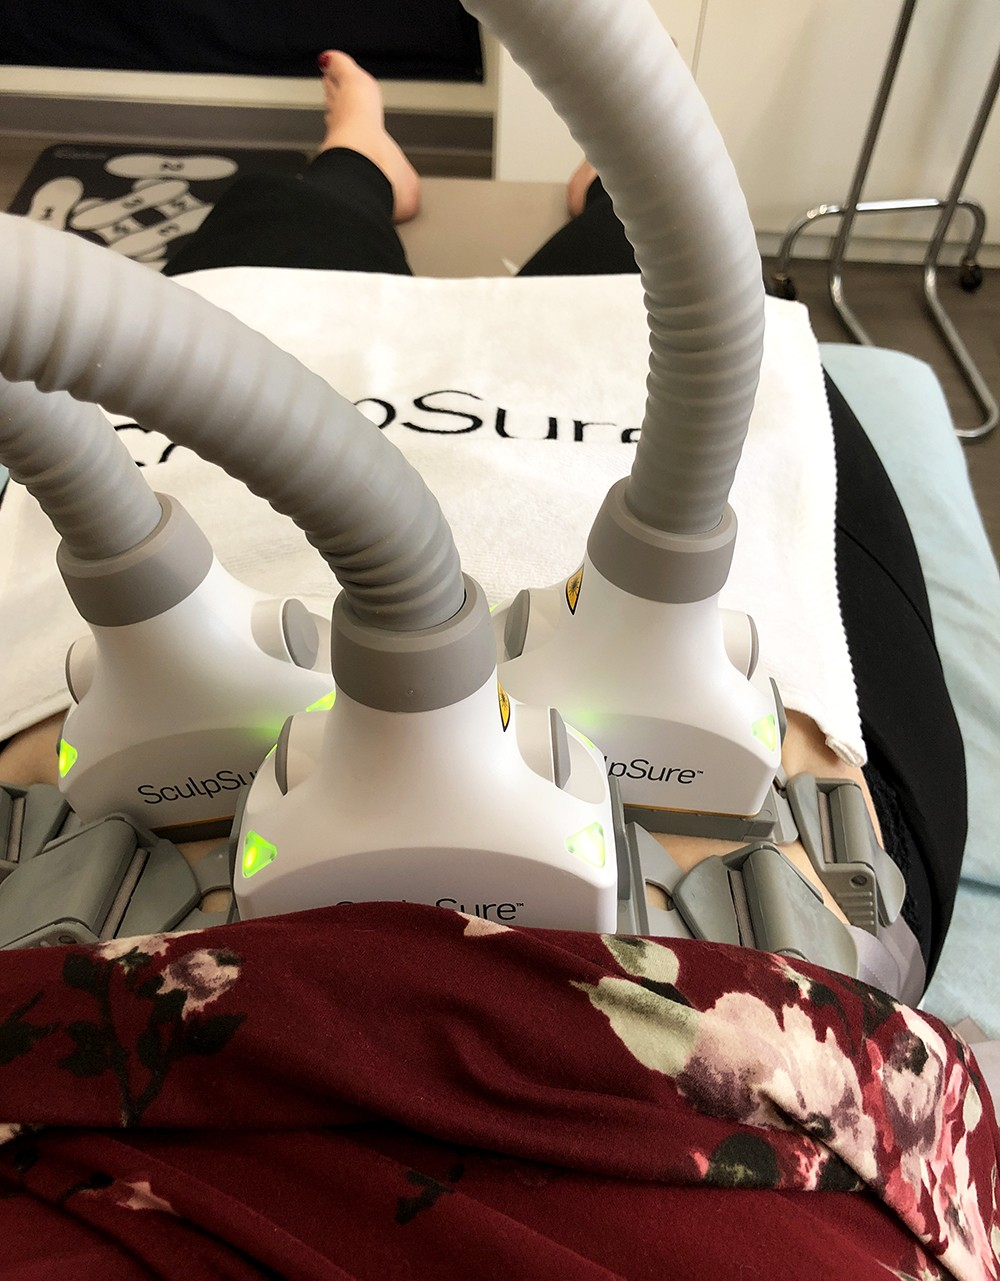 Upper Abdomen SculpSure Treatment at LaserXX - Review